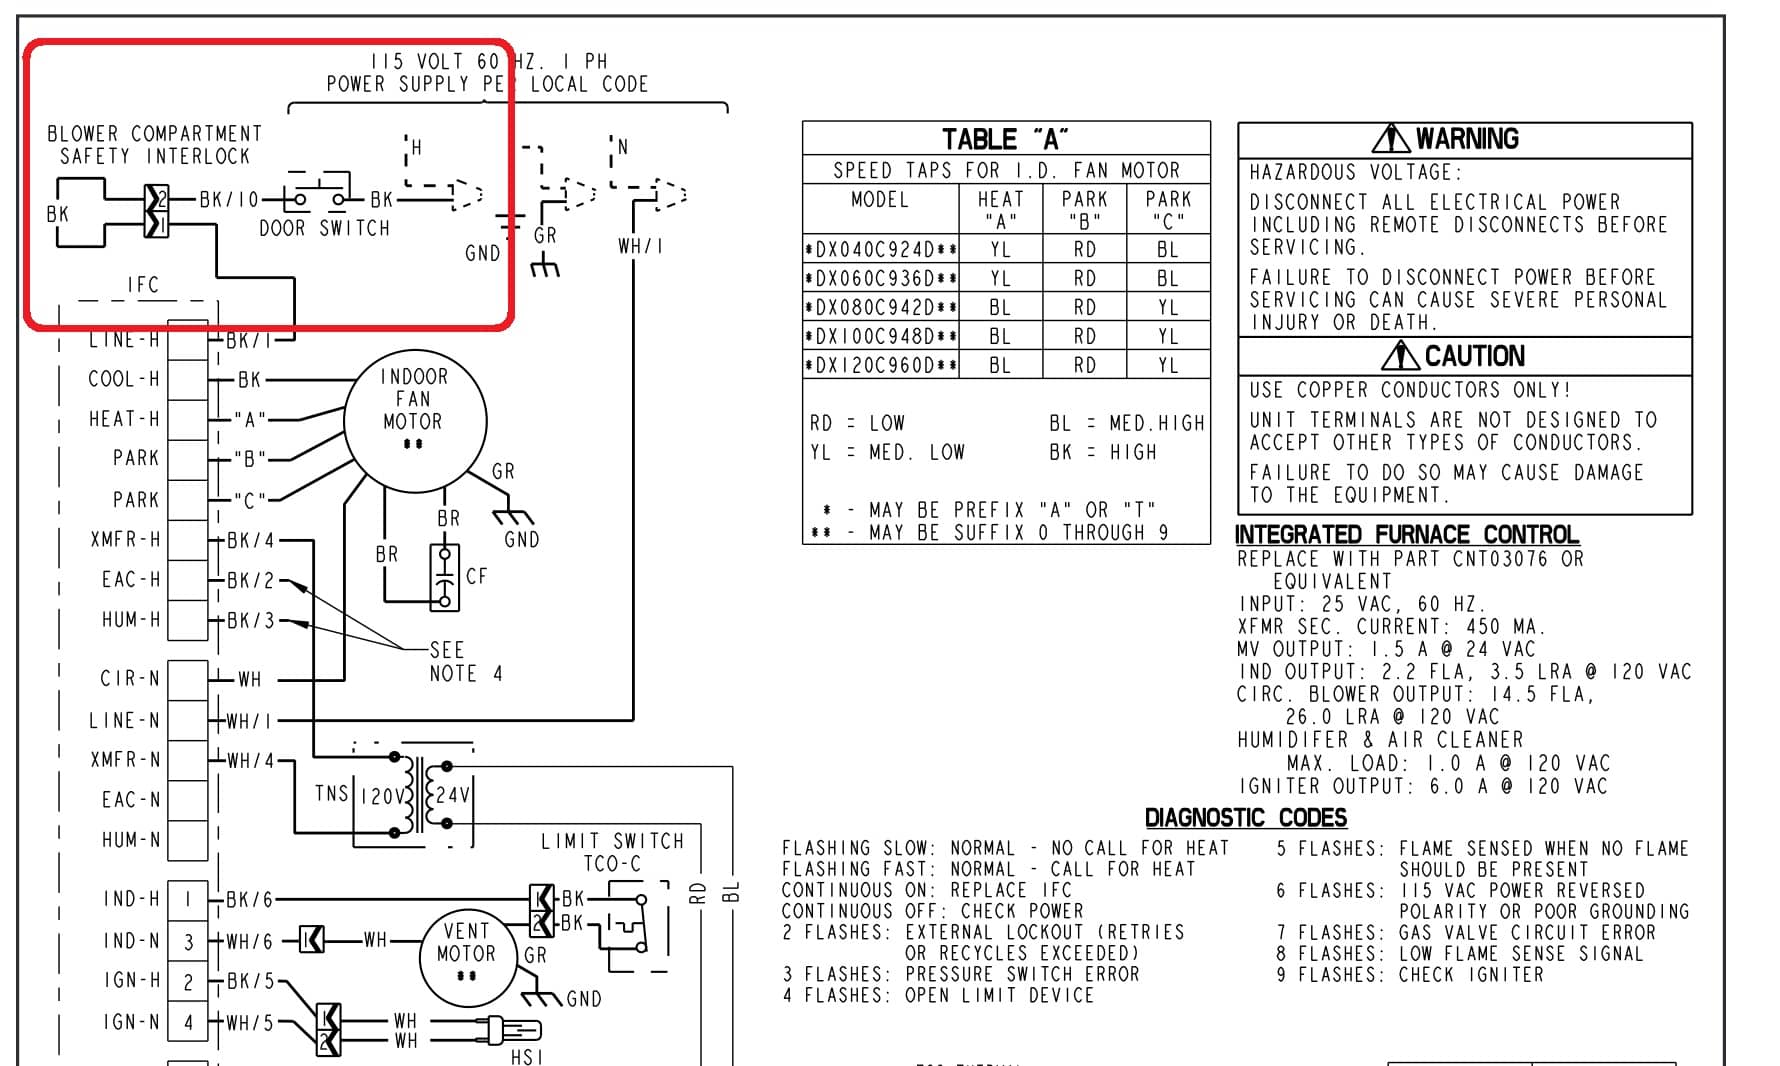 rheem wiring diagrams with Trane Xl1100 Wiring Diagram on Basic Car Ac Gauge Set Hook Up further Trane Xl1100 Wiring Diagram moreover Thermostat Wiring Instructions likewise Trane Heating Wiring Diagrams besides 522311 Carrier Ac Heat Pump Runs Few Minutes Stops.